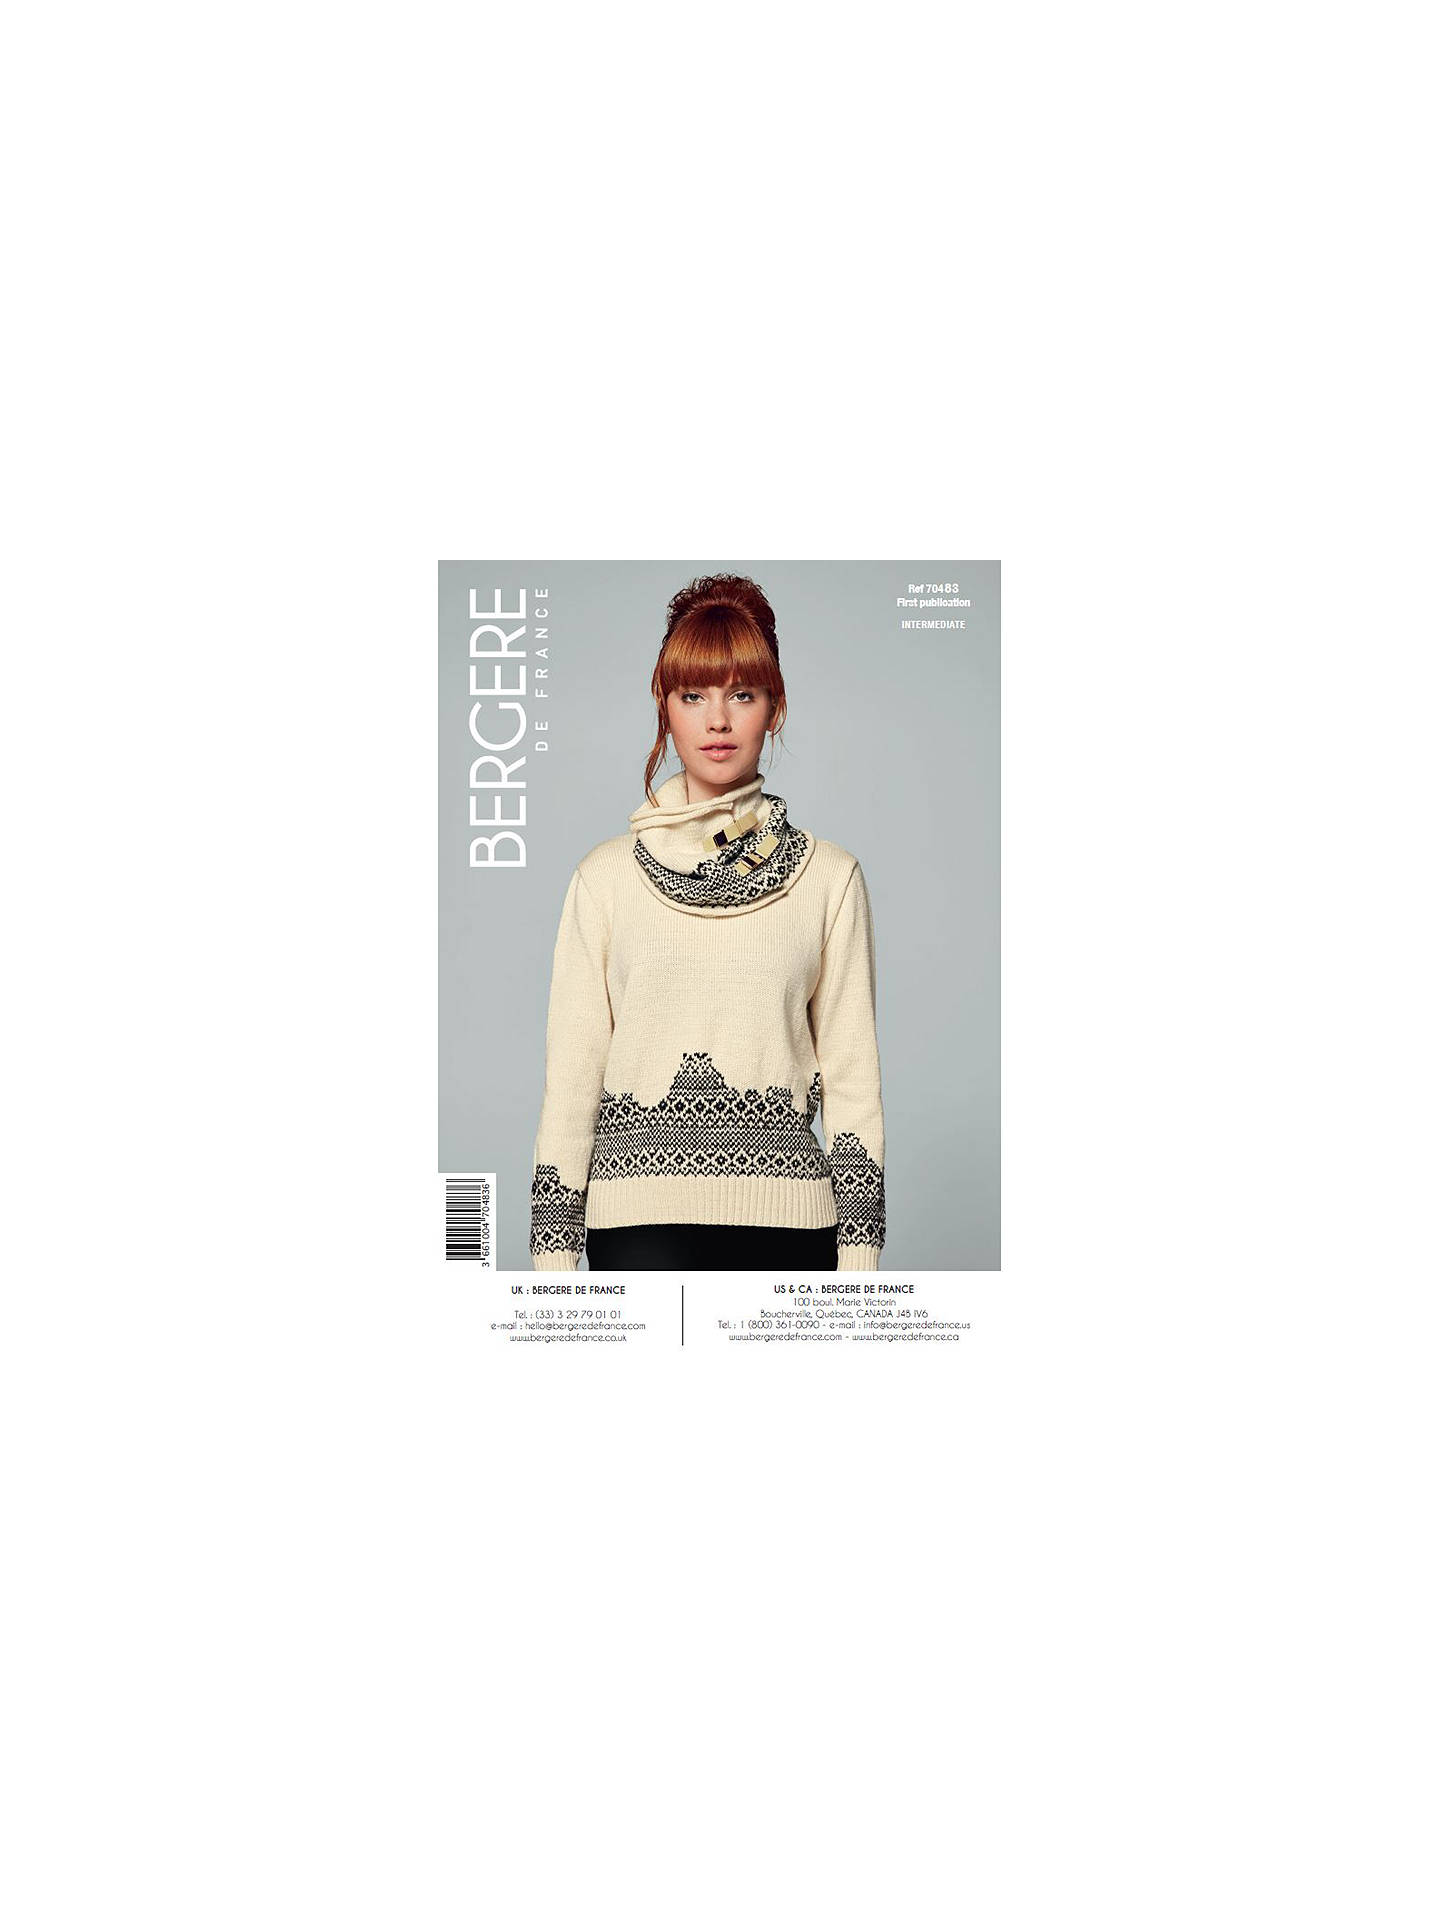 BuyBergere De France Ideal Women's Jacquard Sweater Knitting Pattern, 70483 Online at johnlewis.com